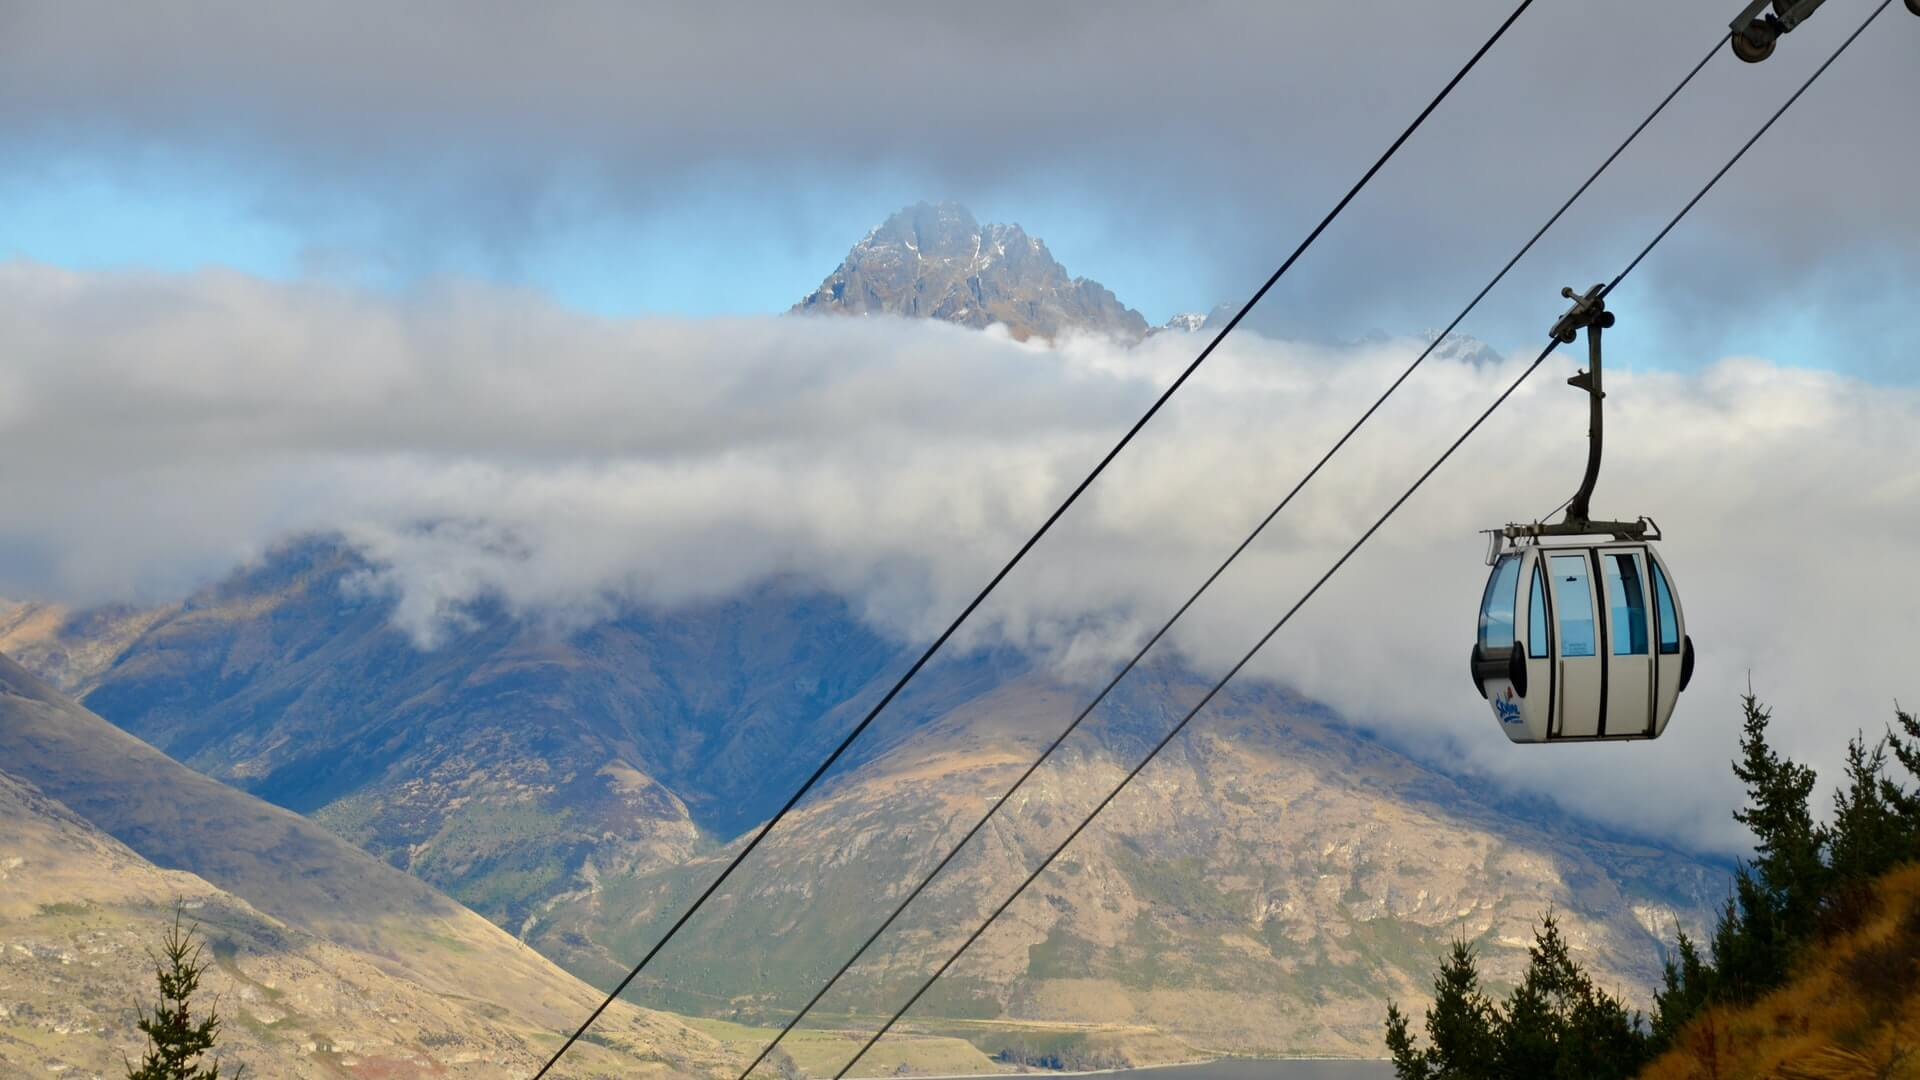 The Skyline gondola en route to the luge track in Queenstown